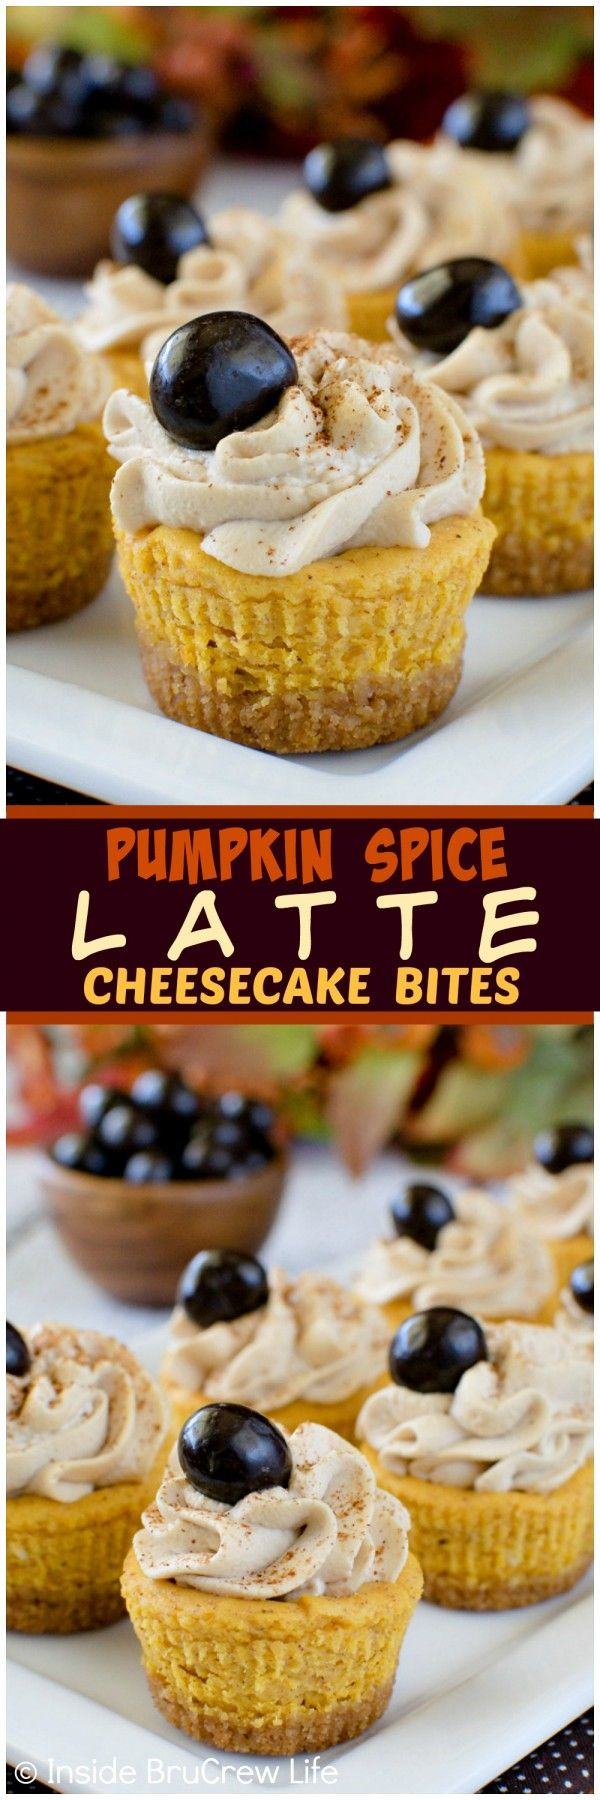 Pumpkin Spice Latte Cheesecake Bites - these mini pumpkin treats have a delicious coffee whip on top. You will find yourself grabbing a few extras since they are so small.  Great recipe for fall parties.